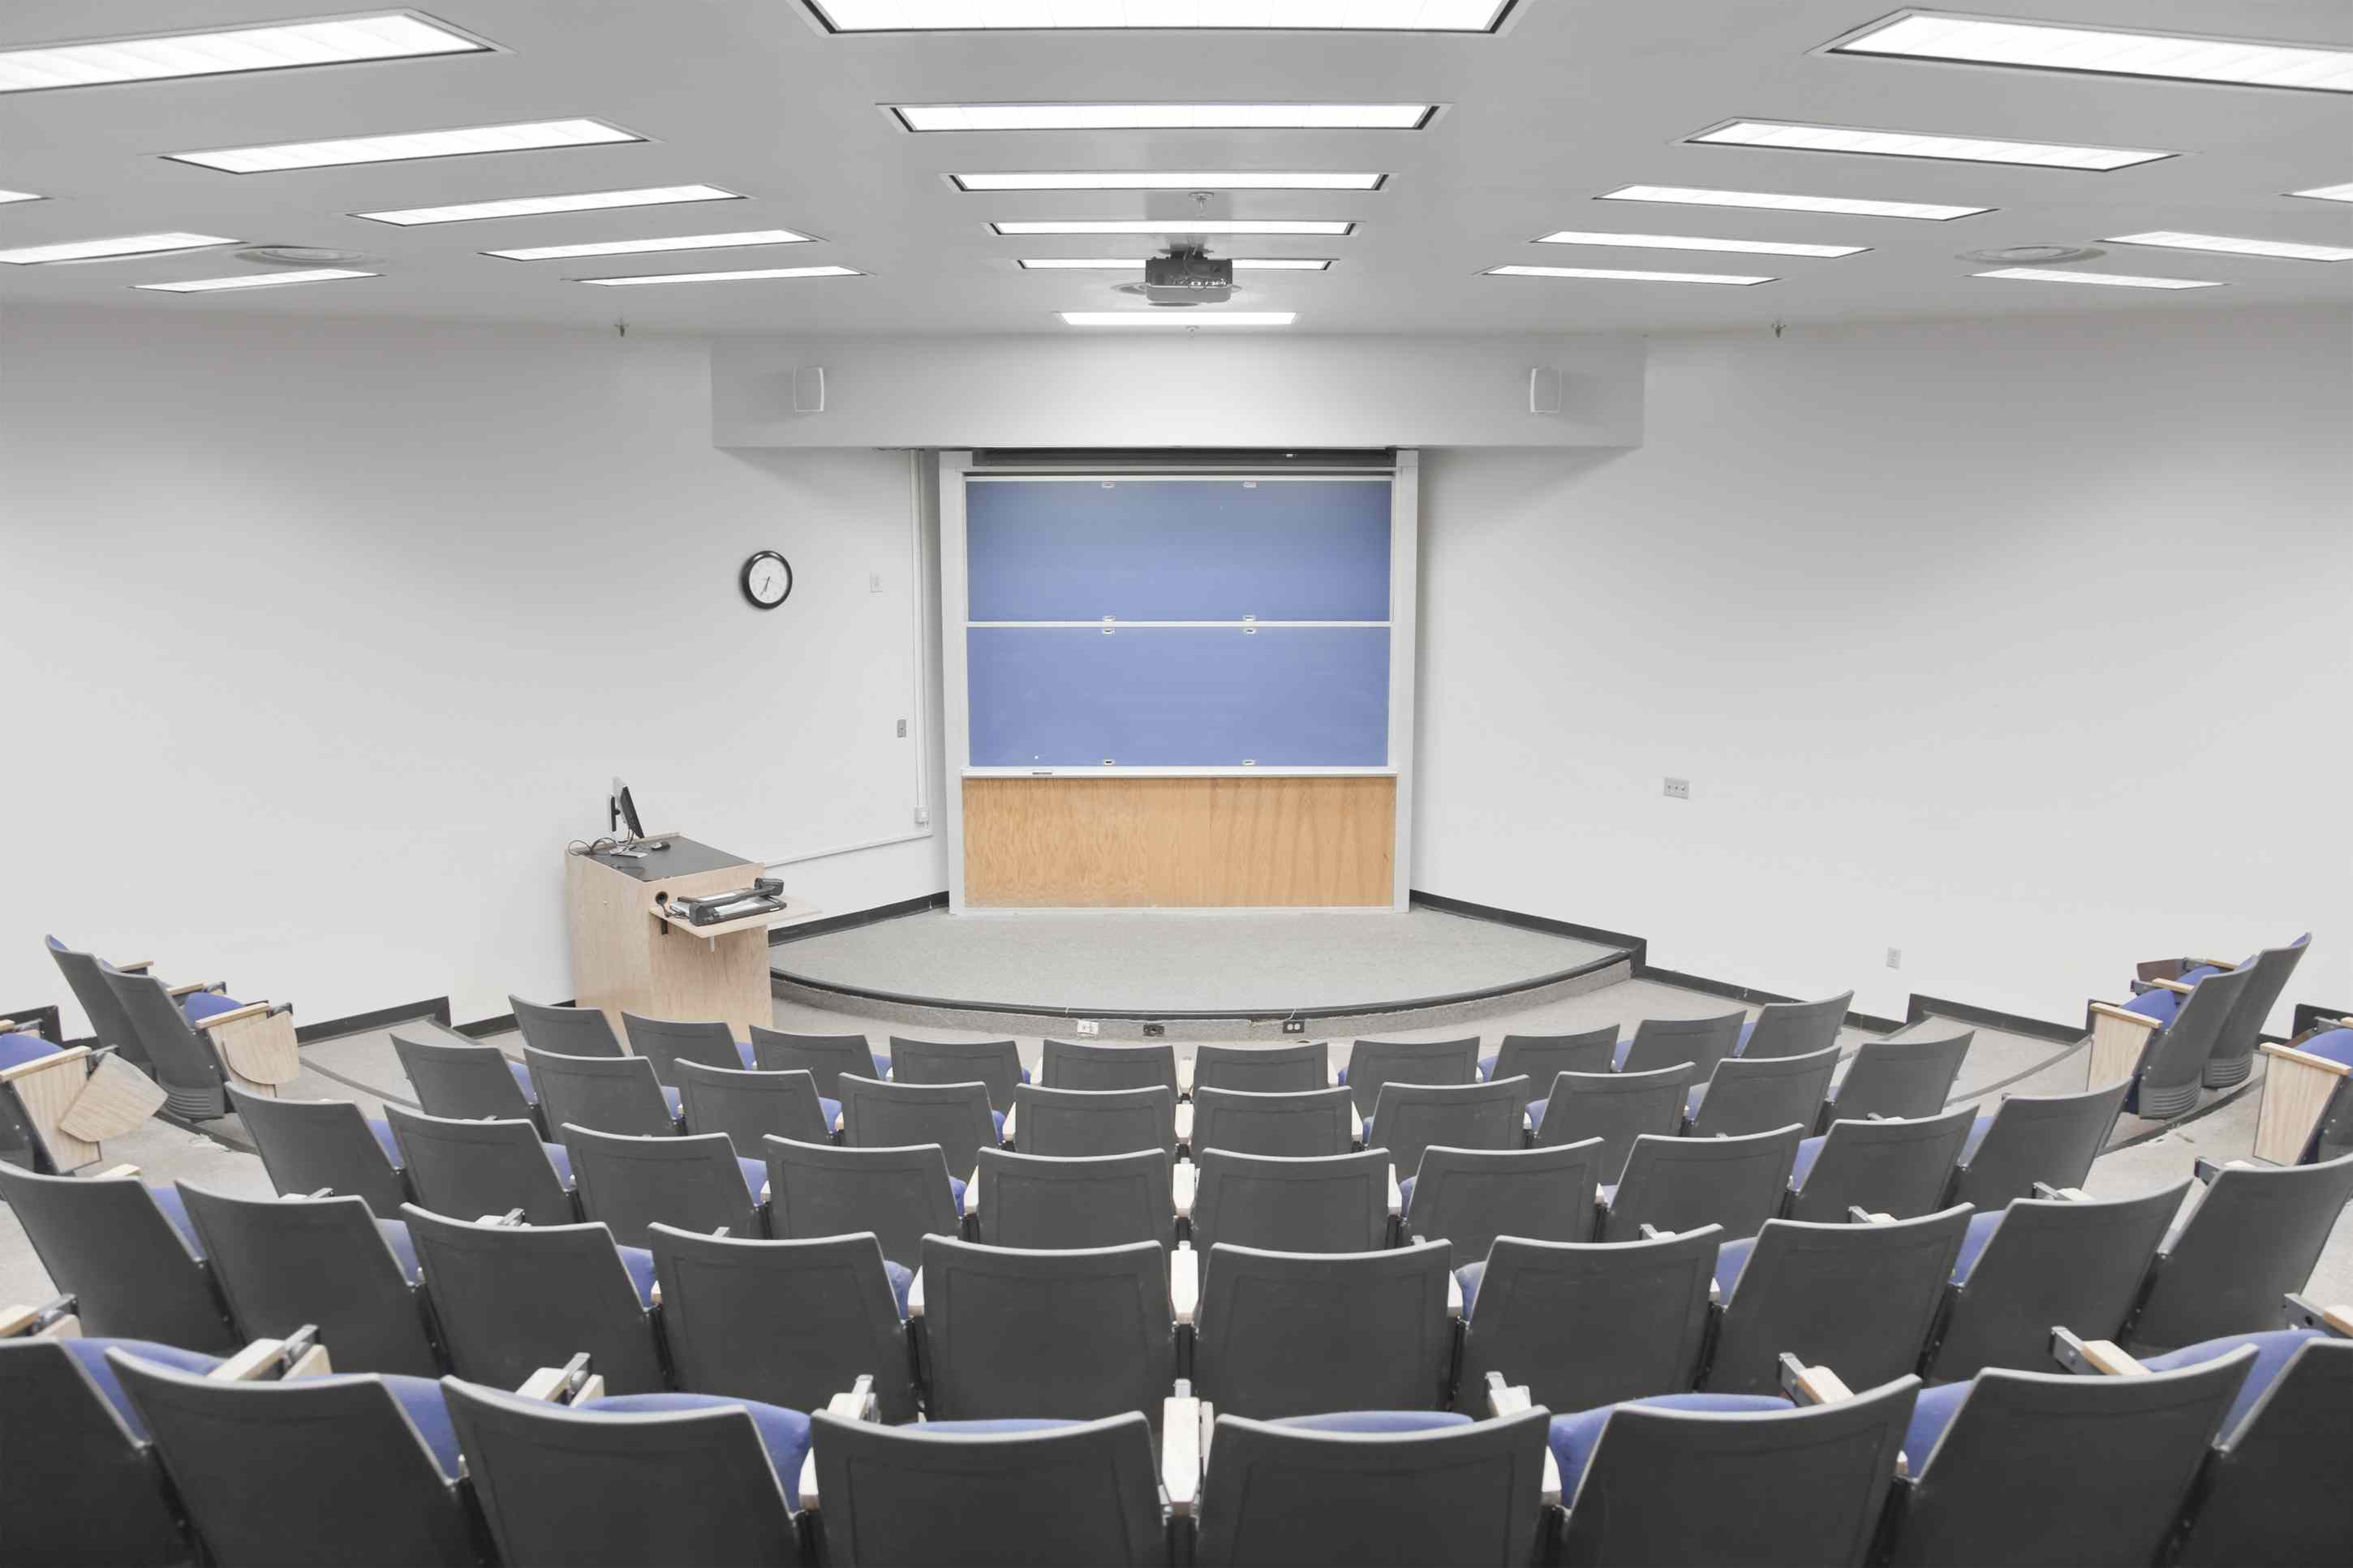 Empty university lecture hall with curved seating